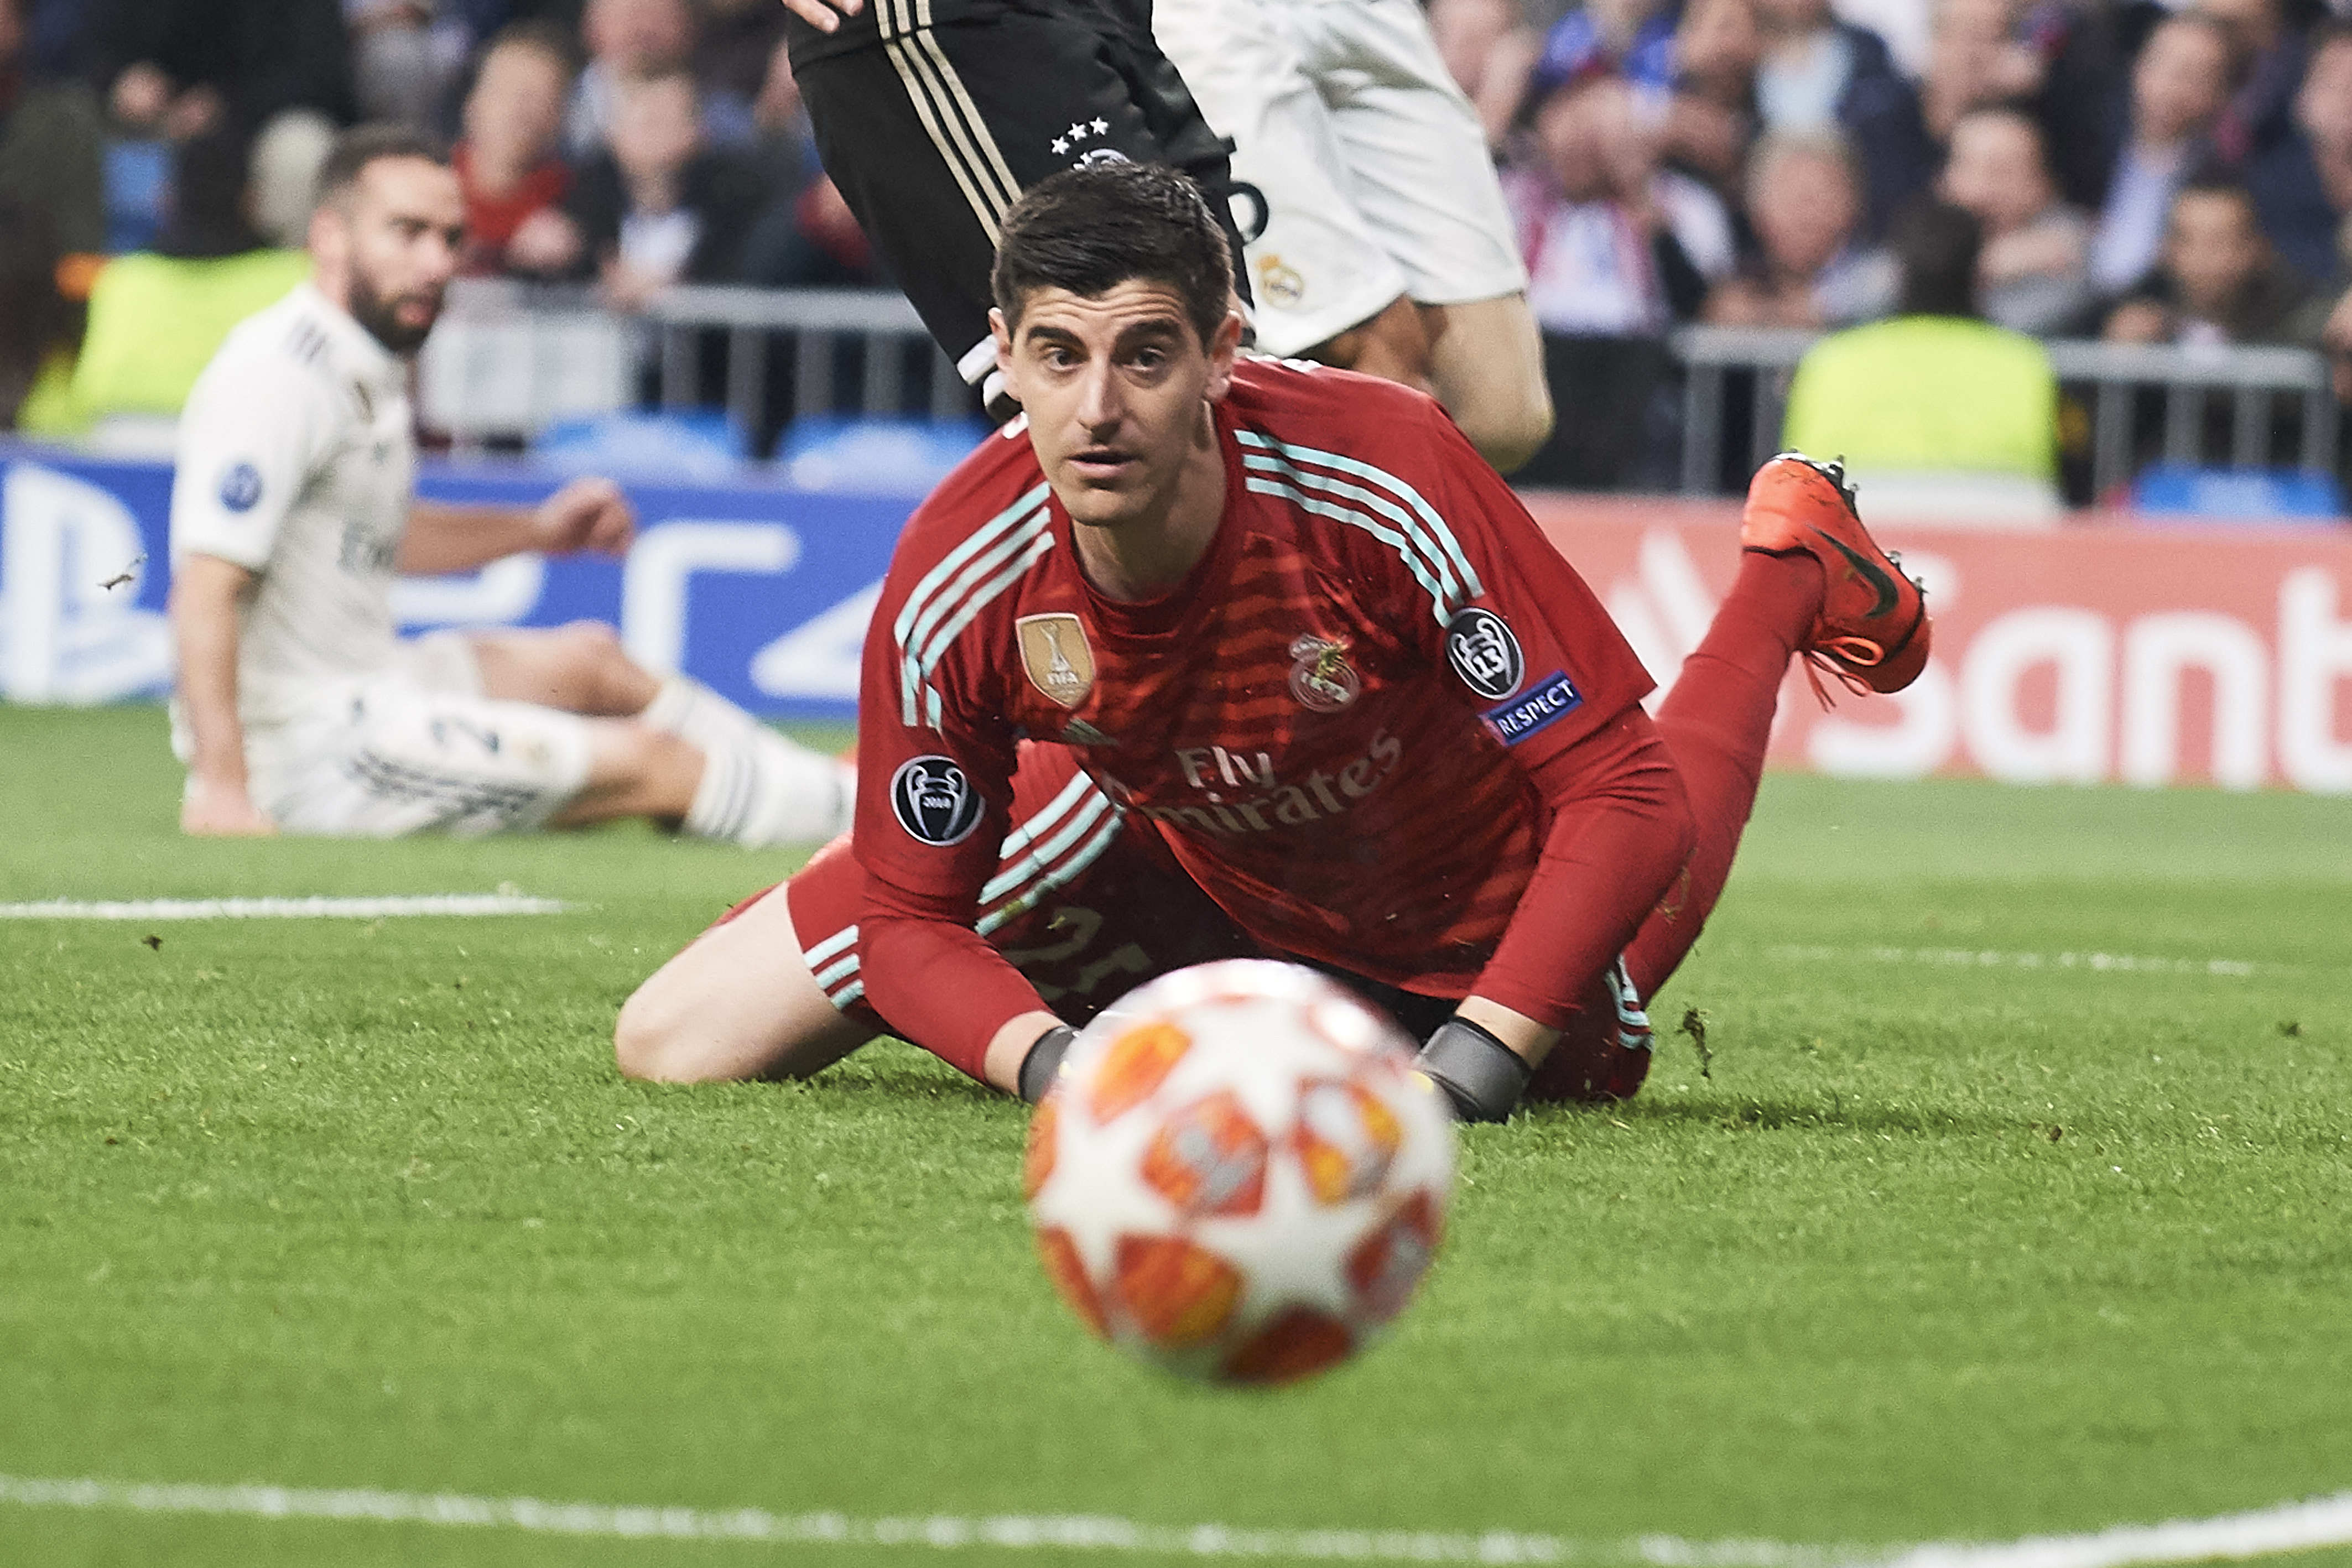 It's not been a good season all round for Courtois. Image: PA Images